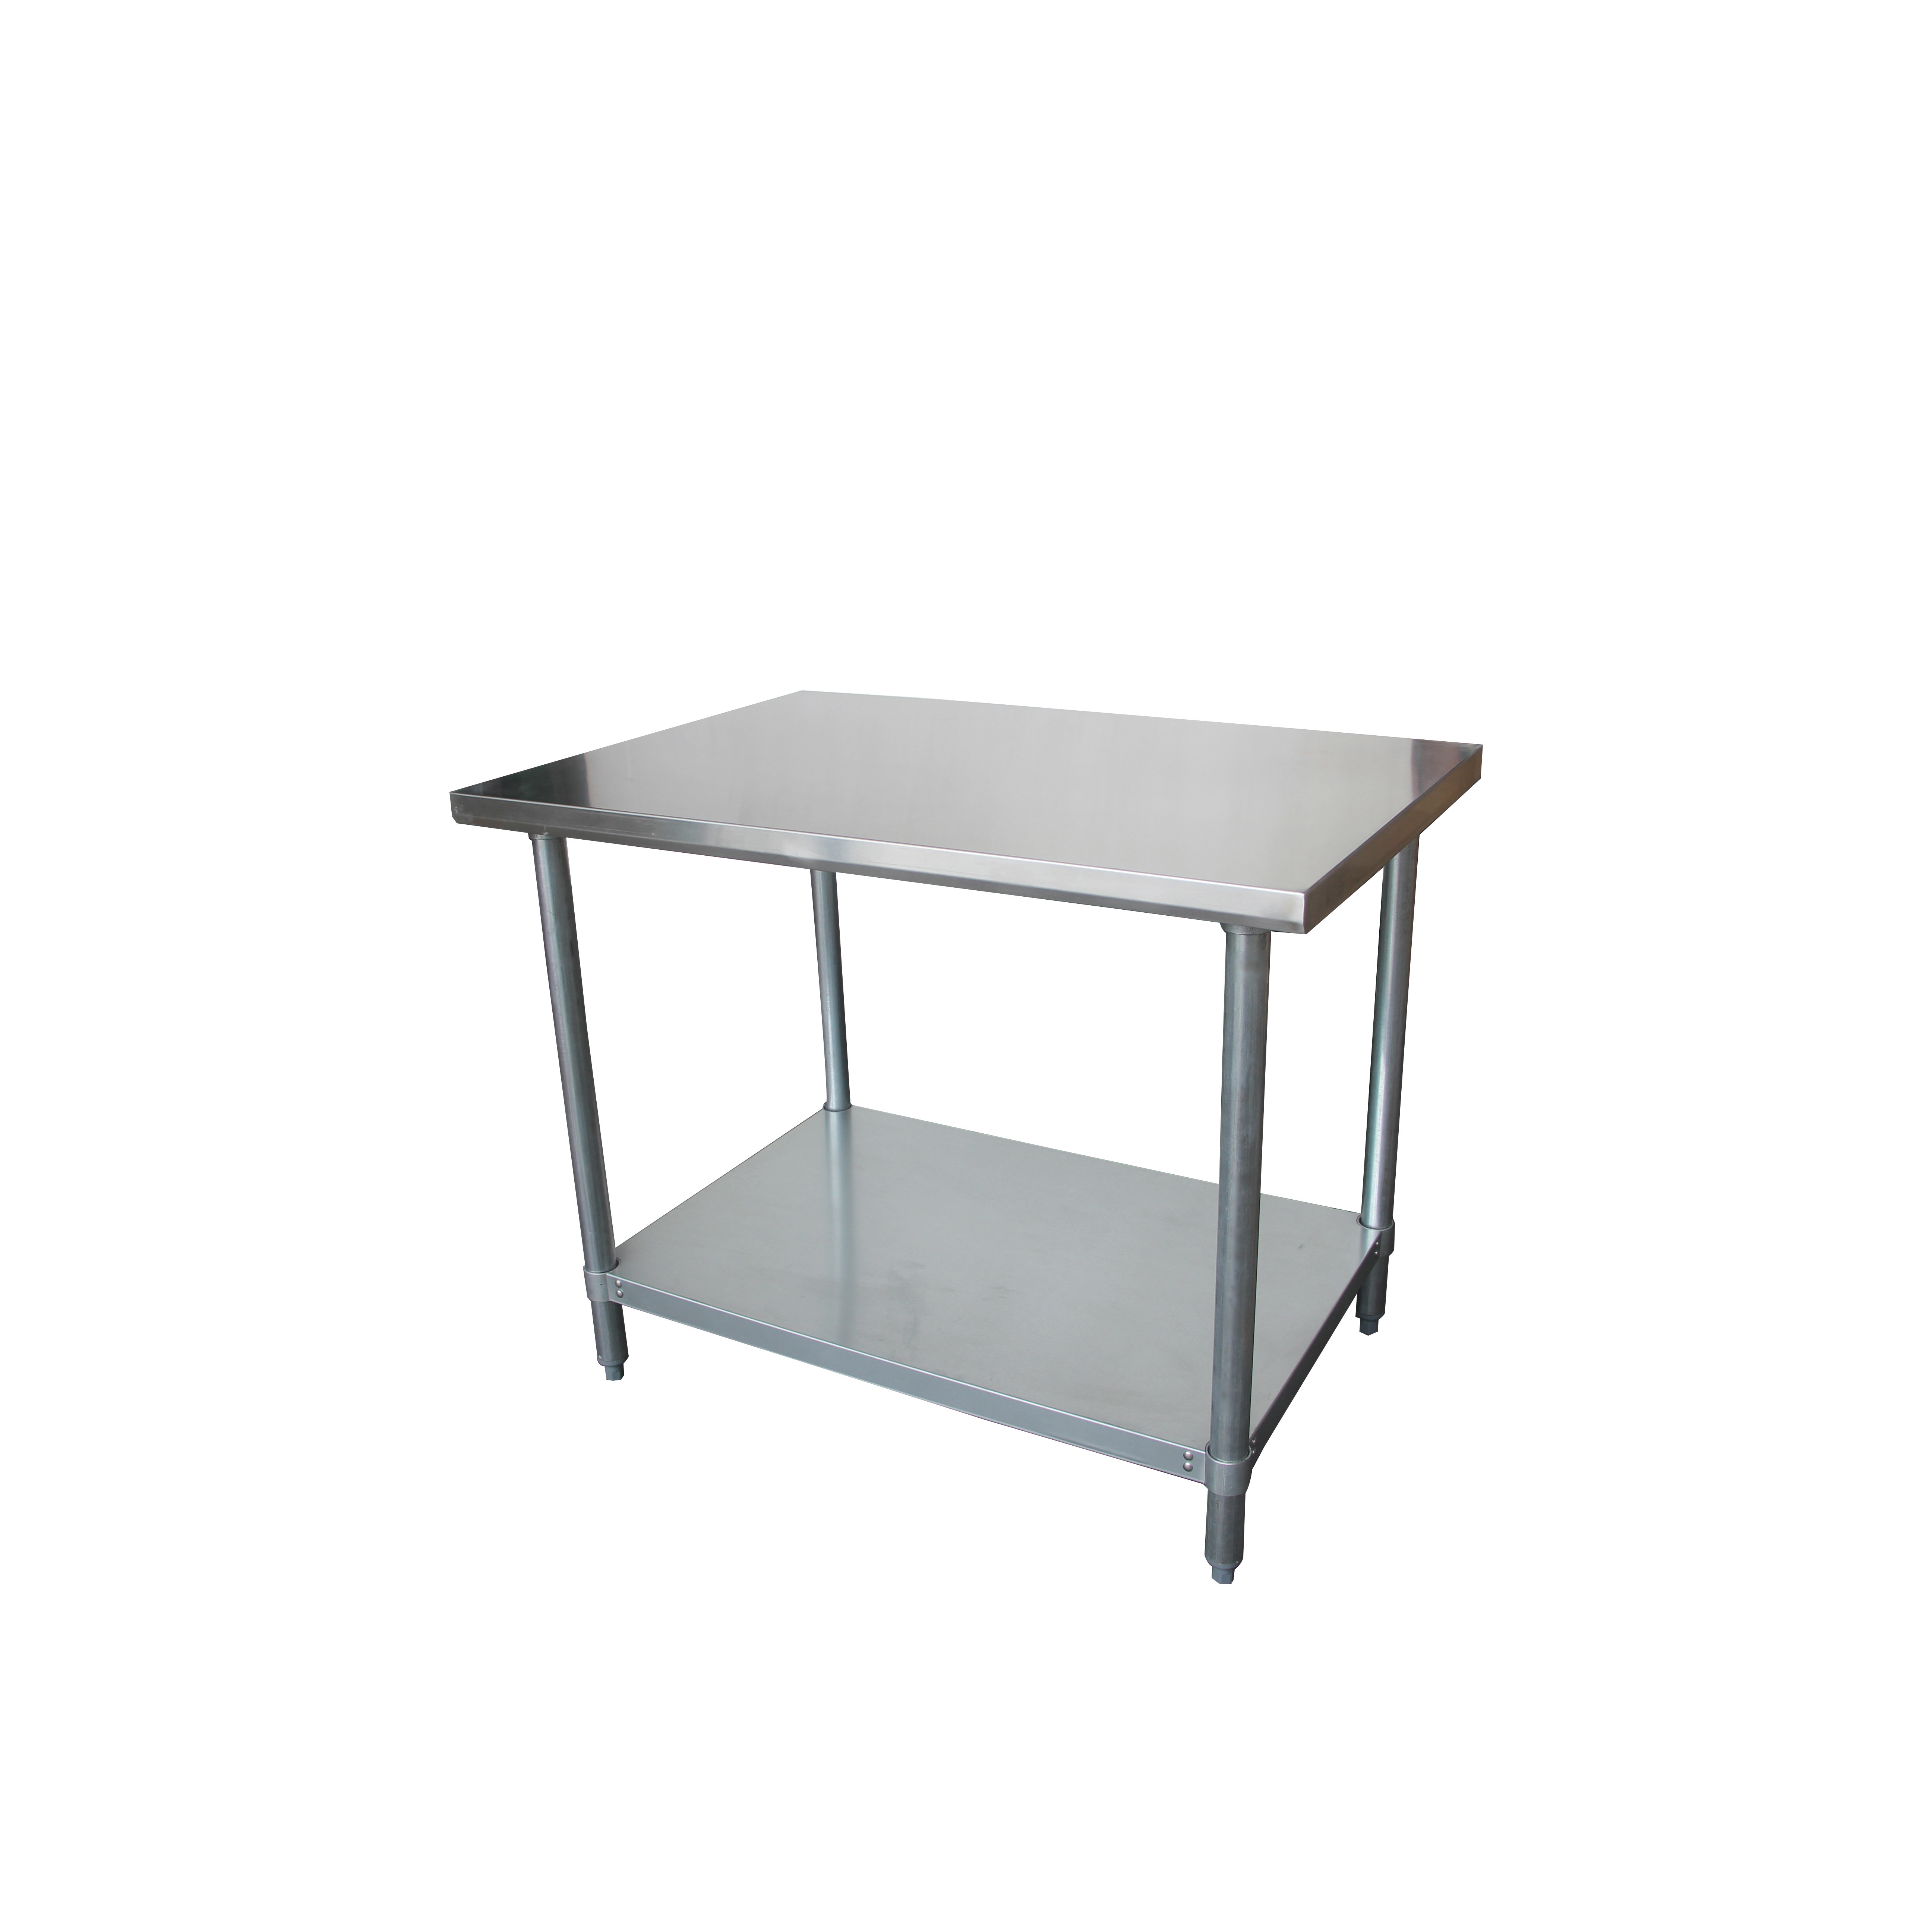 Awesome Best Sales 2018 Stainless Steel Work Bench Table Stainless Steel Prep Table With Under Shelf Buy Stainless Steel Work Bench Table Stainless Steel Cjindustries Chair Design For Home Cjindustriesco